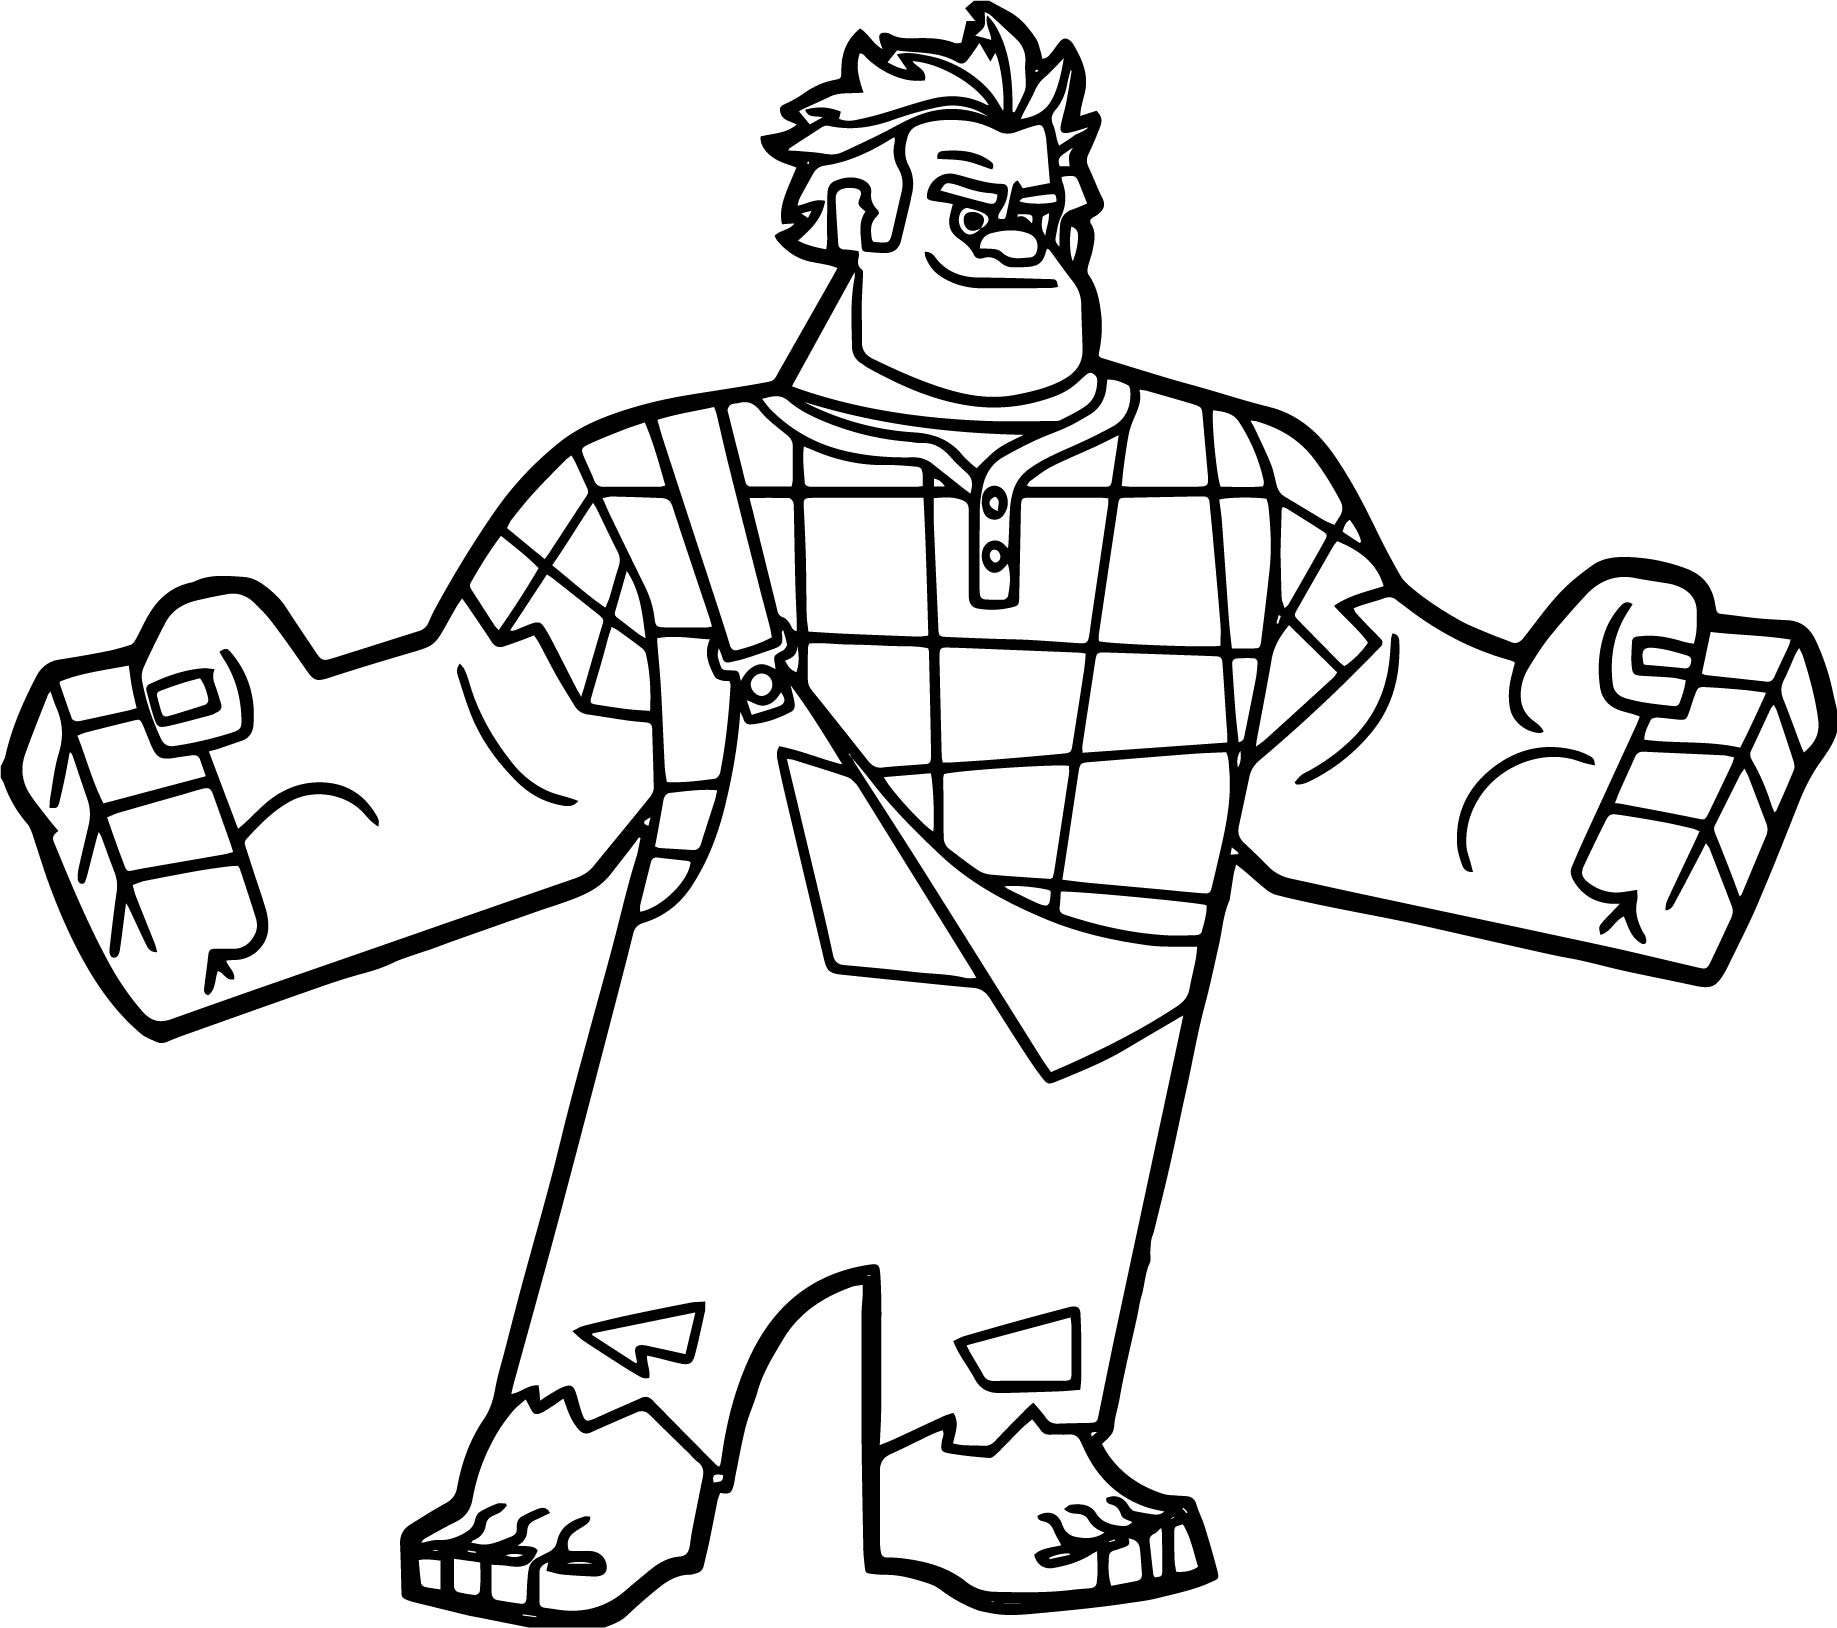 wreck it ralph coloring pages - wreck ralph coloring page